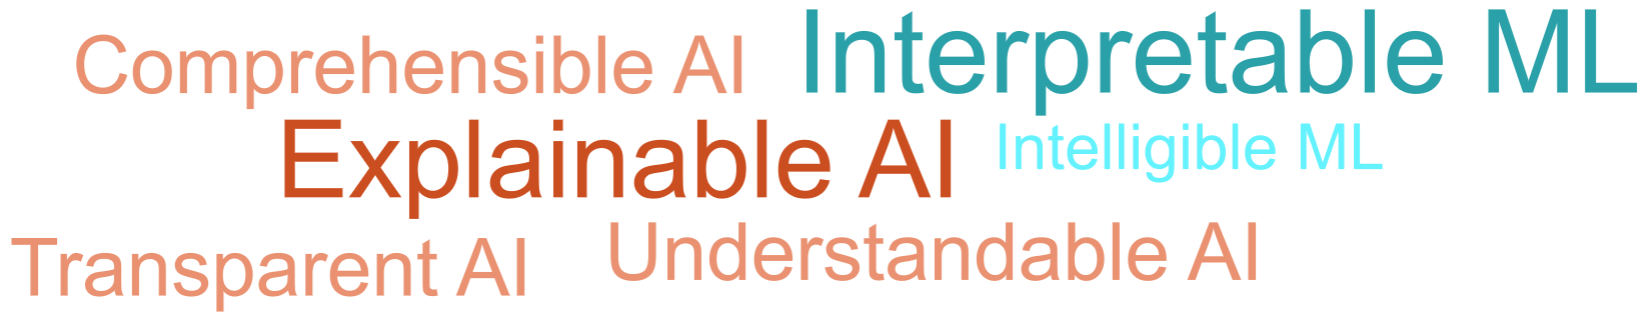 Word cloud with different terms for explainable AI